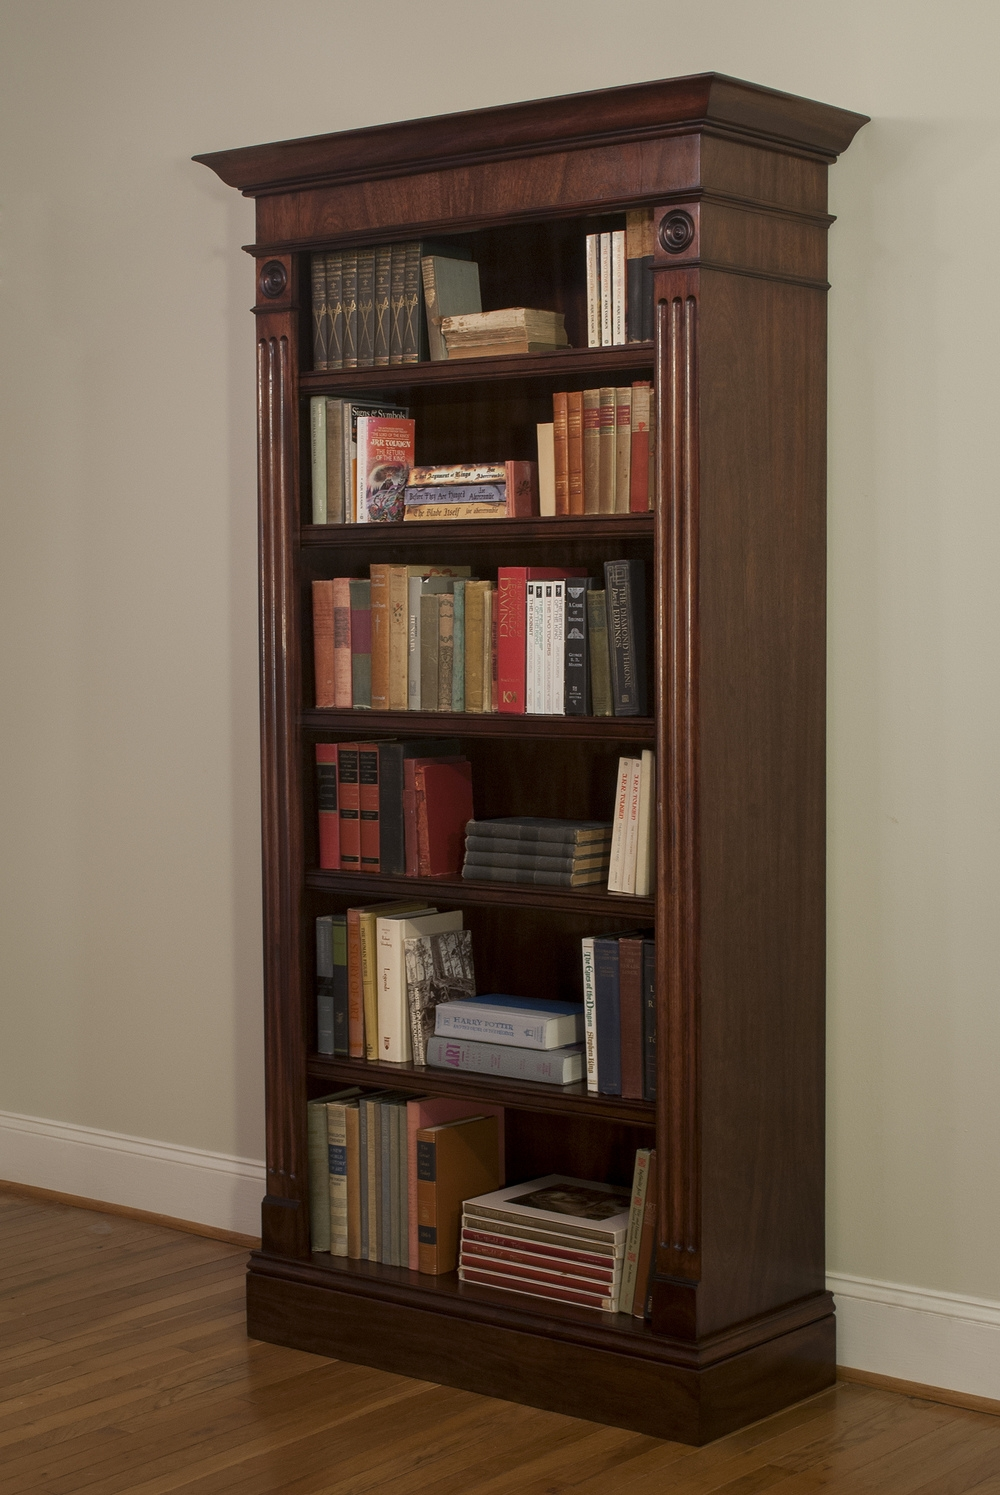 Mahogany Bookshelves Idi Design Intended For Classic Bookshelf Design (#11 of 15)